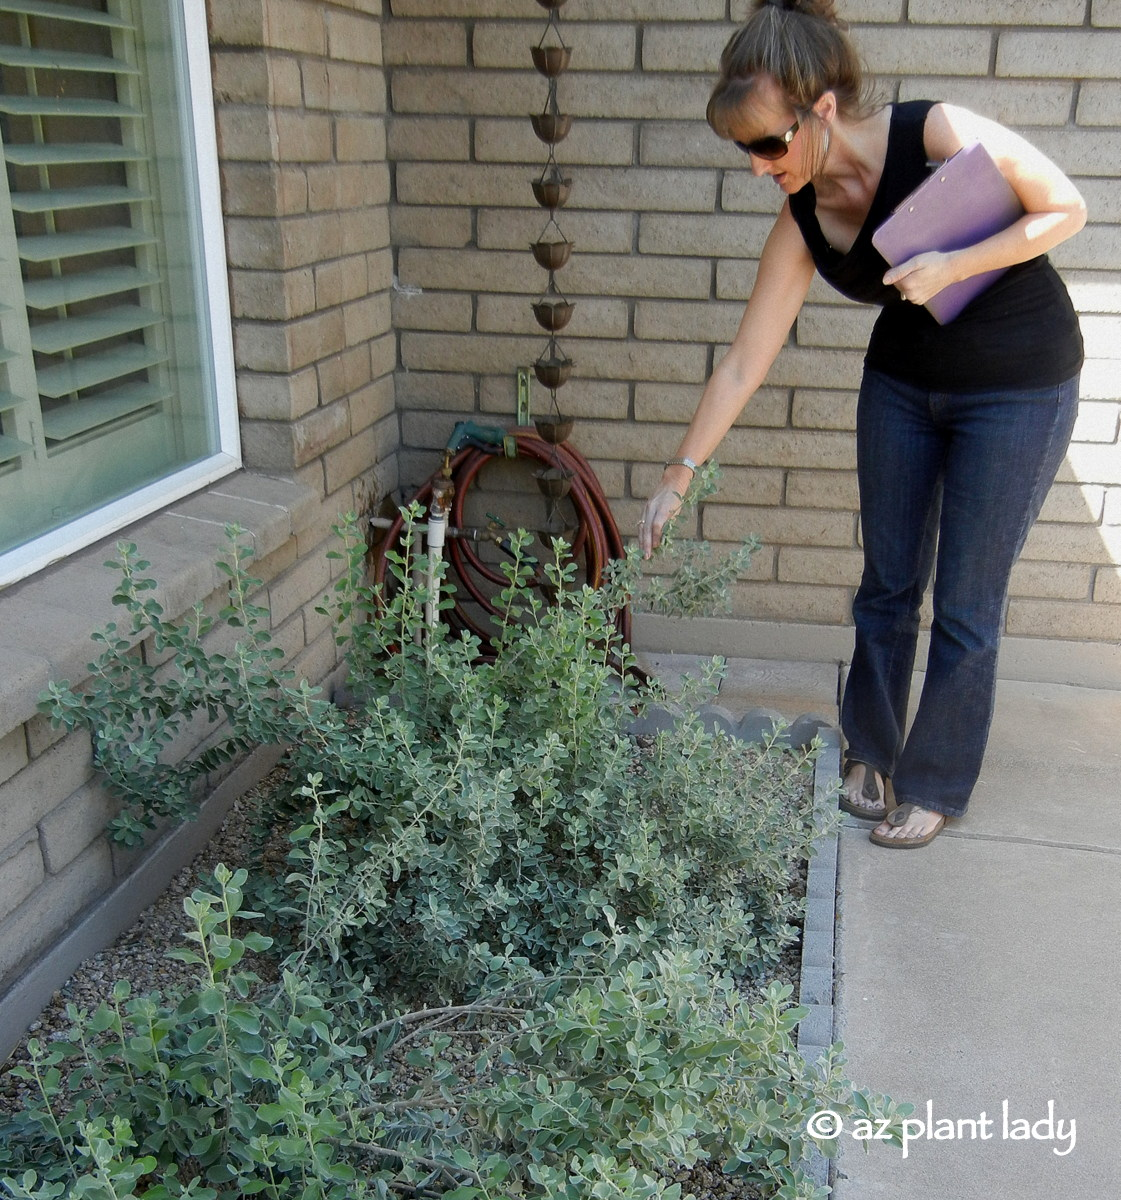 About az plant lady ramblings from a desert garden for Garden consultant